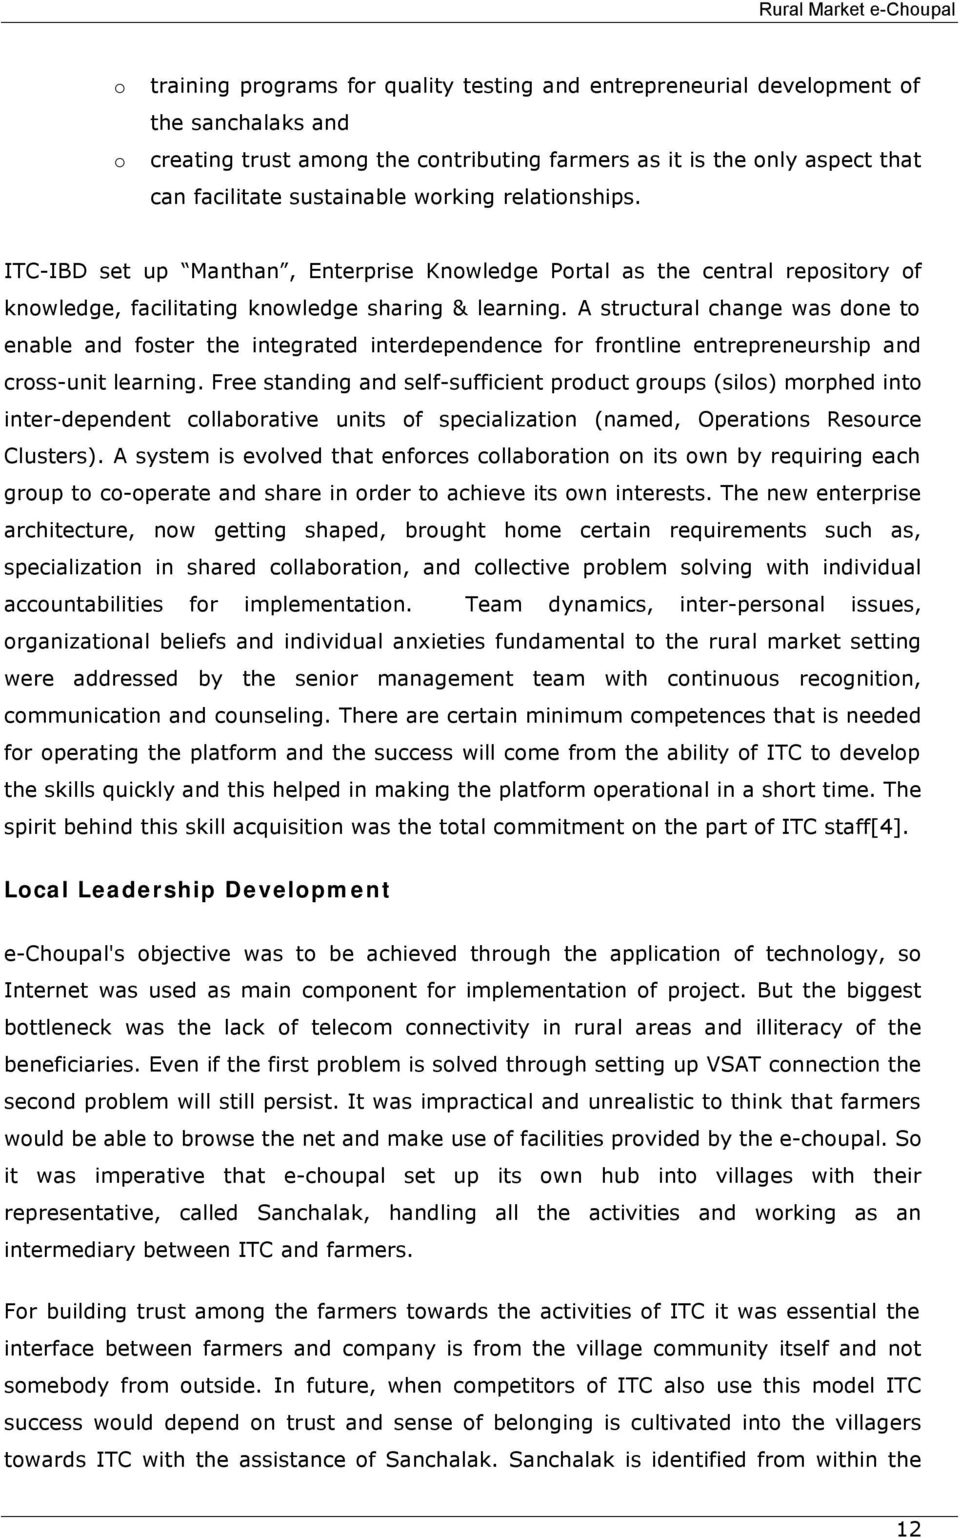 Developing a rural market e-hub the case study of e-choupal experience of itc